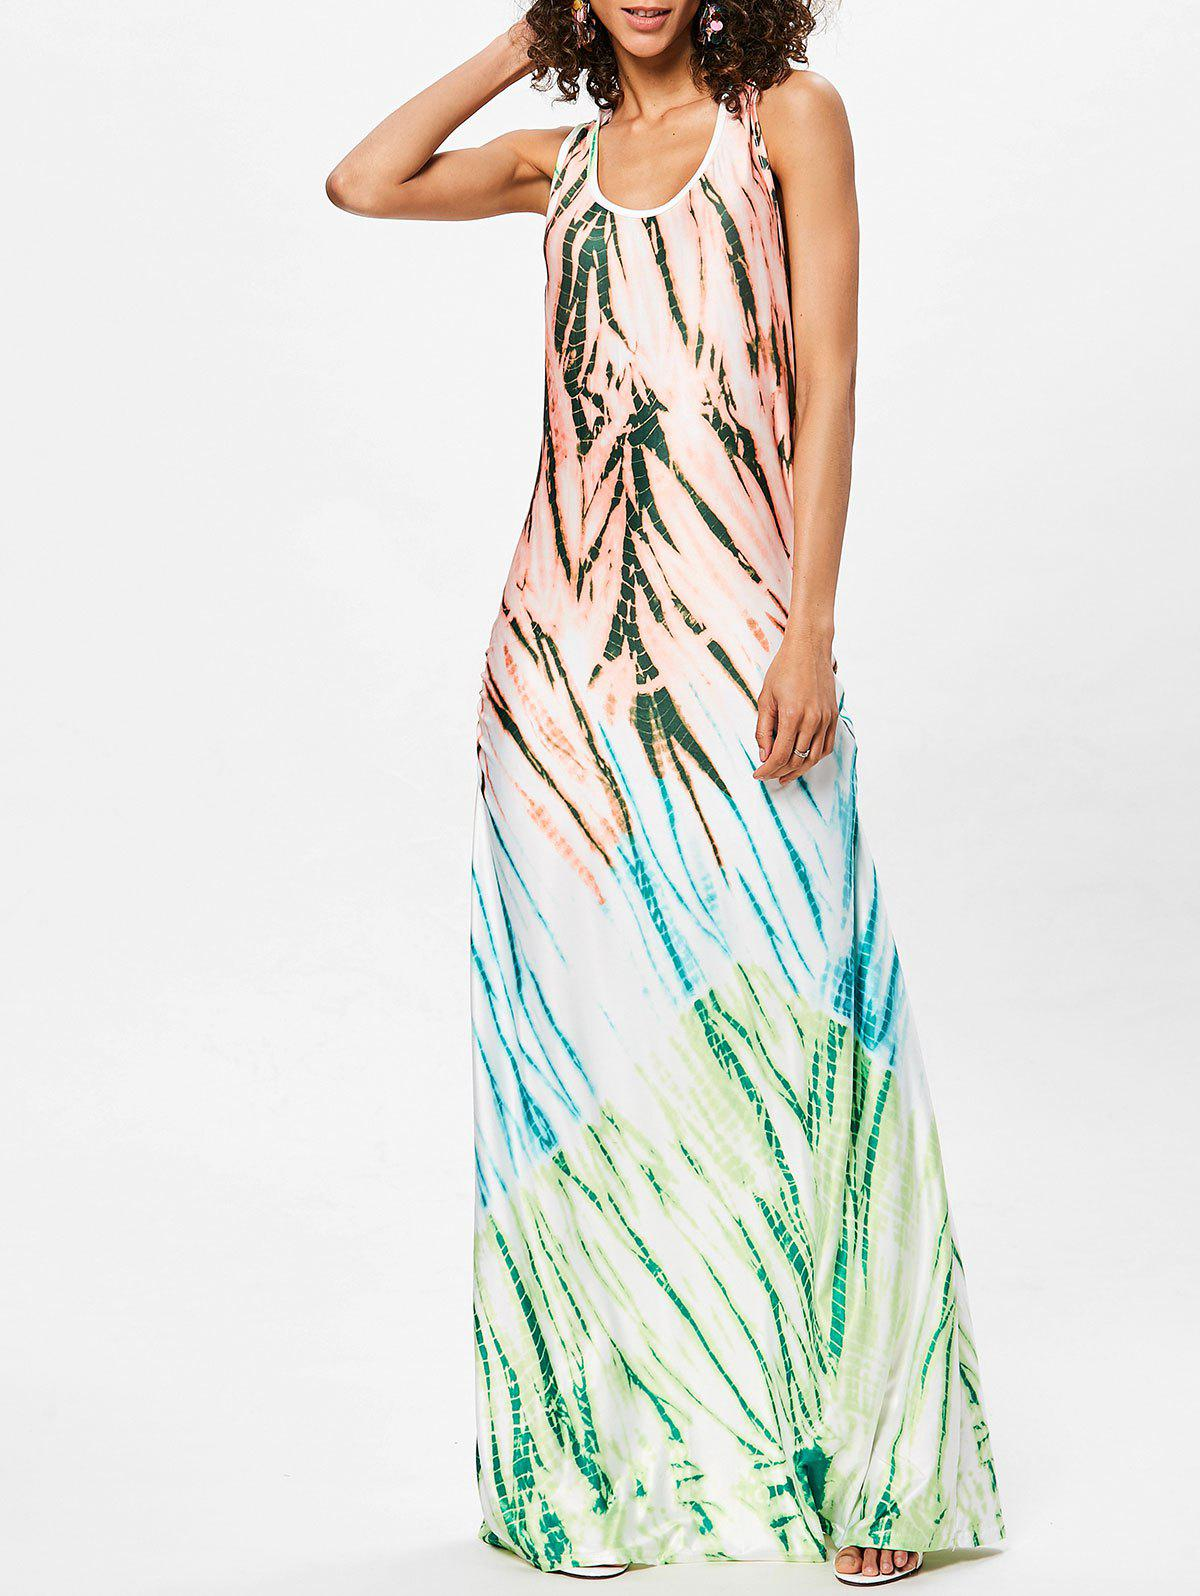 Shop Scoop Neck Racerback Maxi Dress